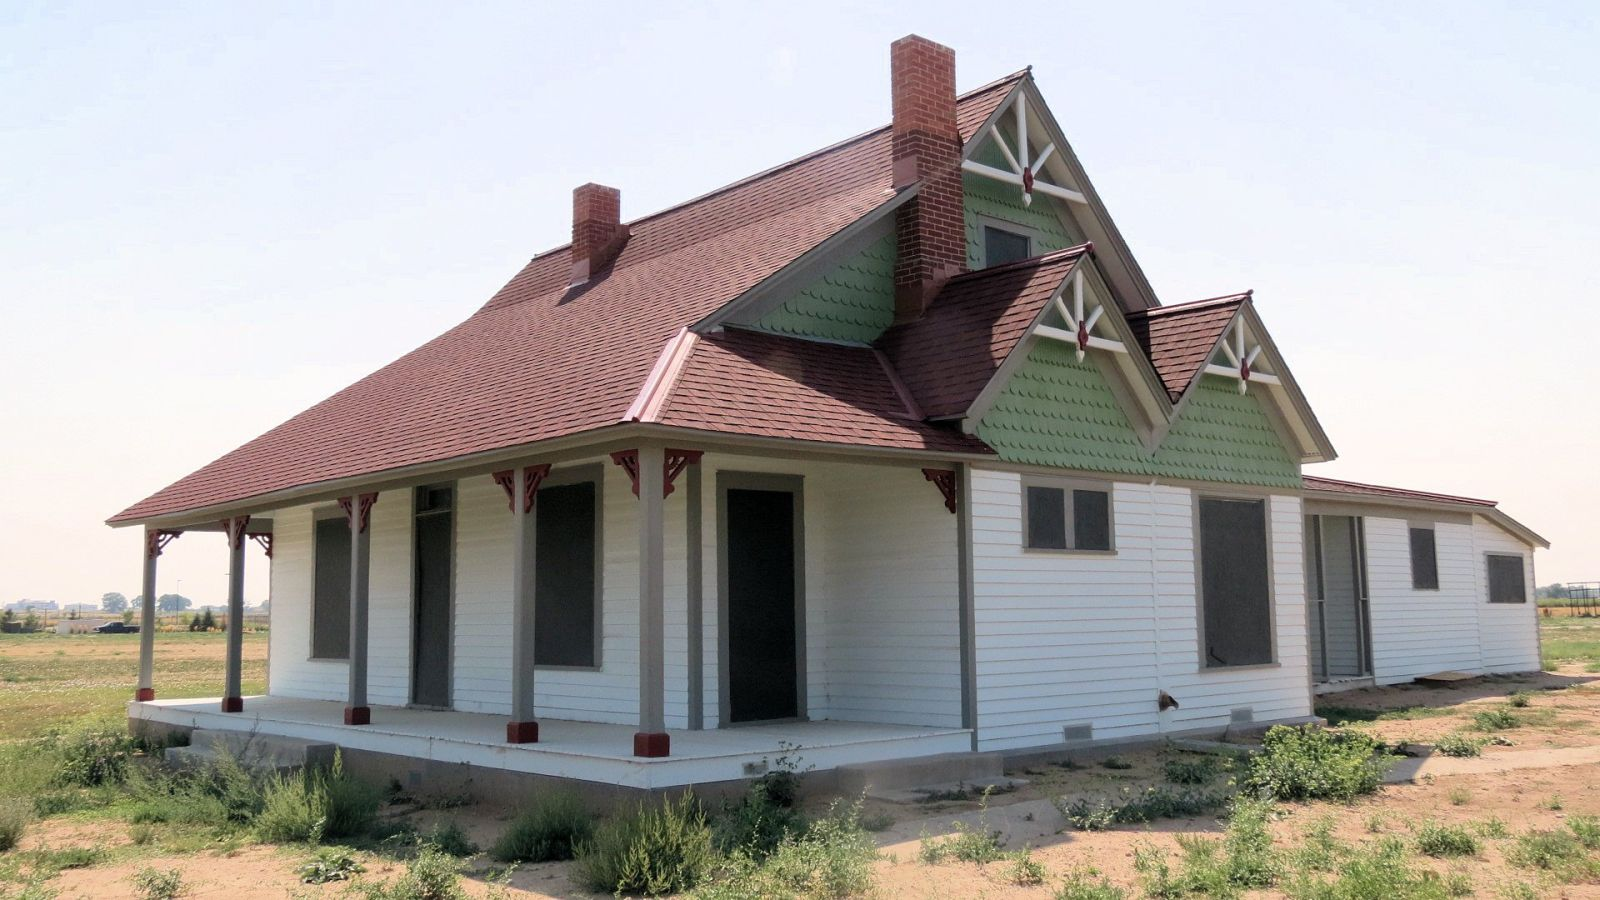 One of the buildings at the farm, which is being renovated and updated to become a museum in 2017.